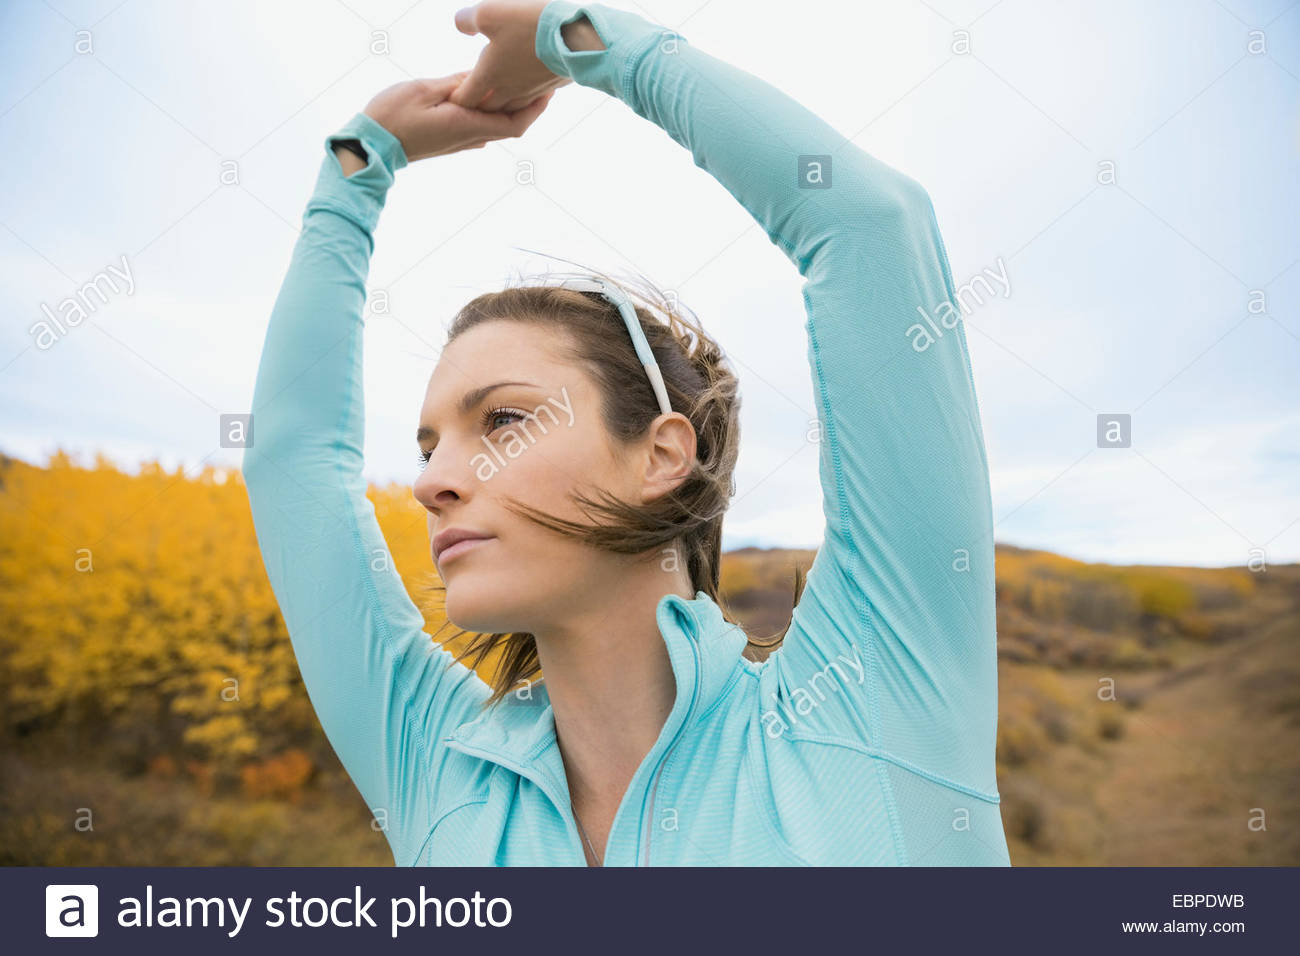 Runner stretching arms - Stock Image